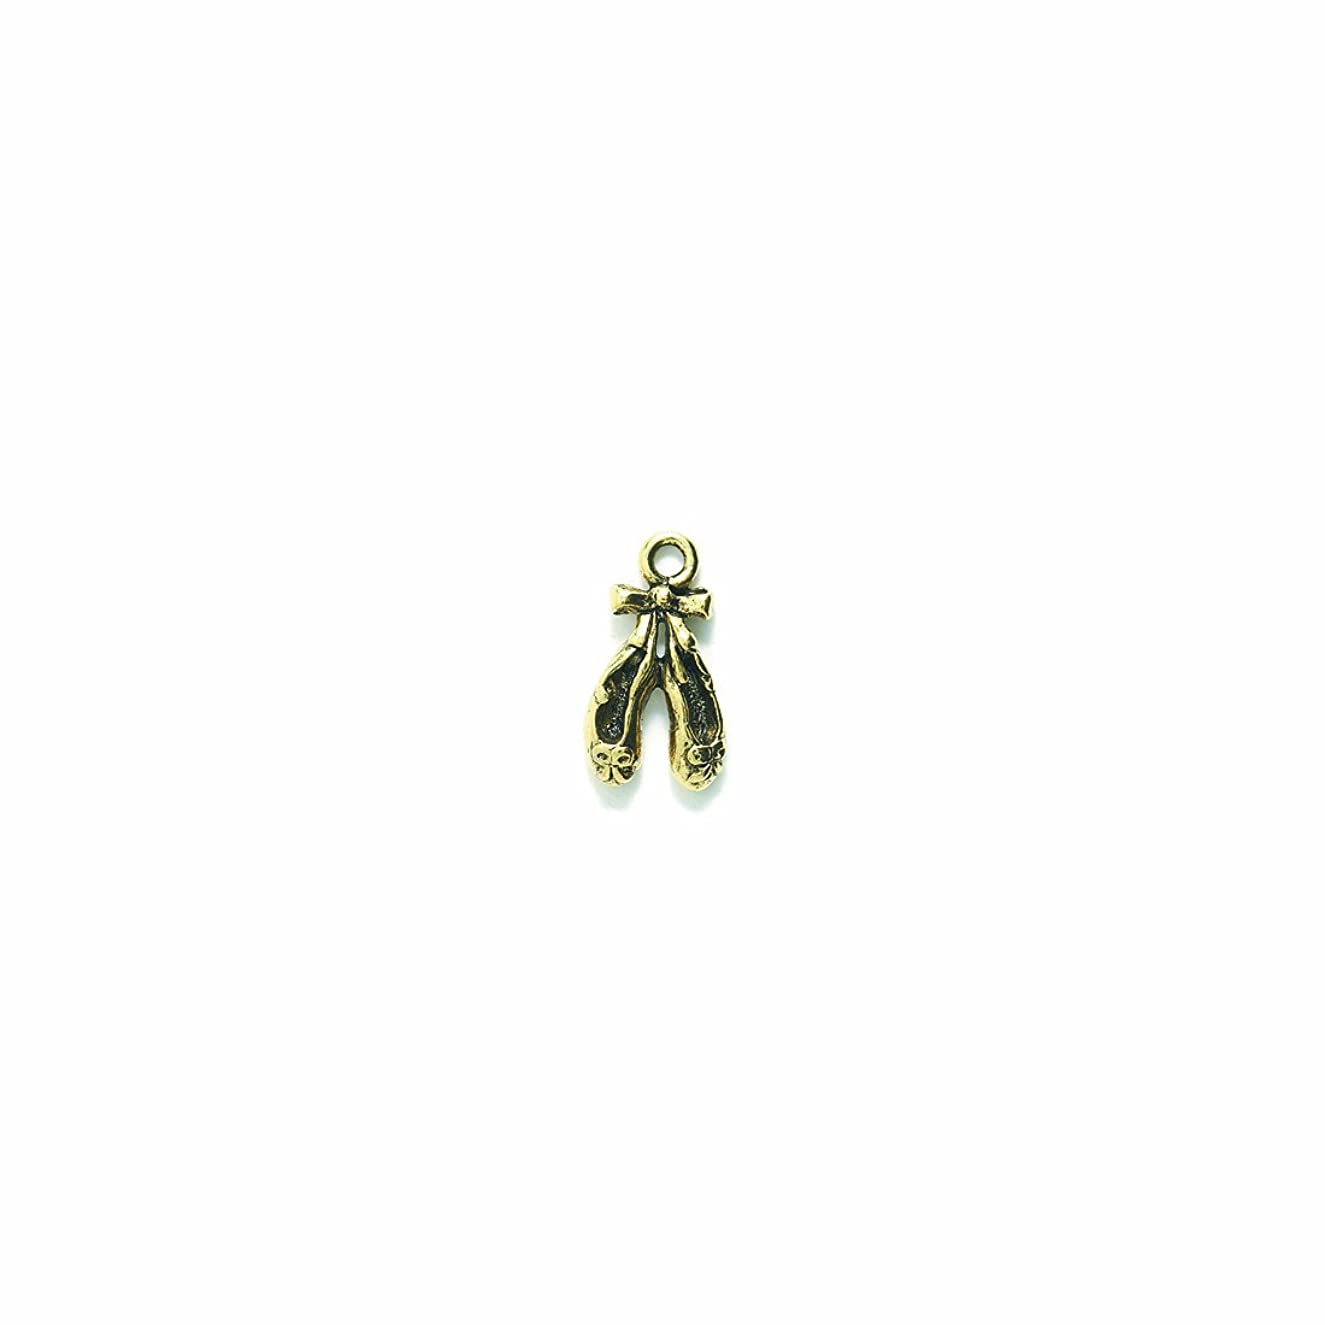 Shipwreck Beads Pewter Ballet Shoes Charm, Antique Gold, 10 by 19mm, 3-Piece